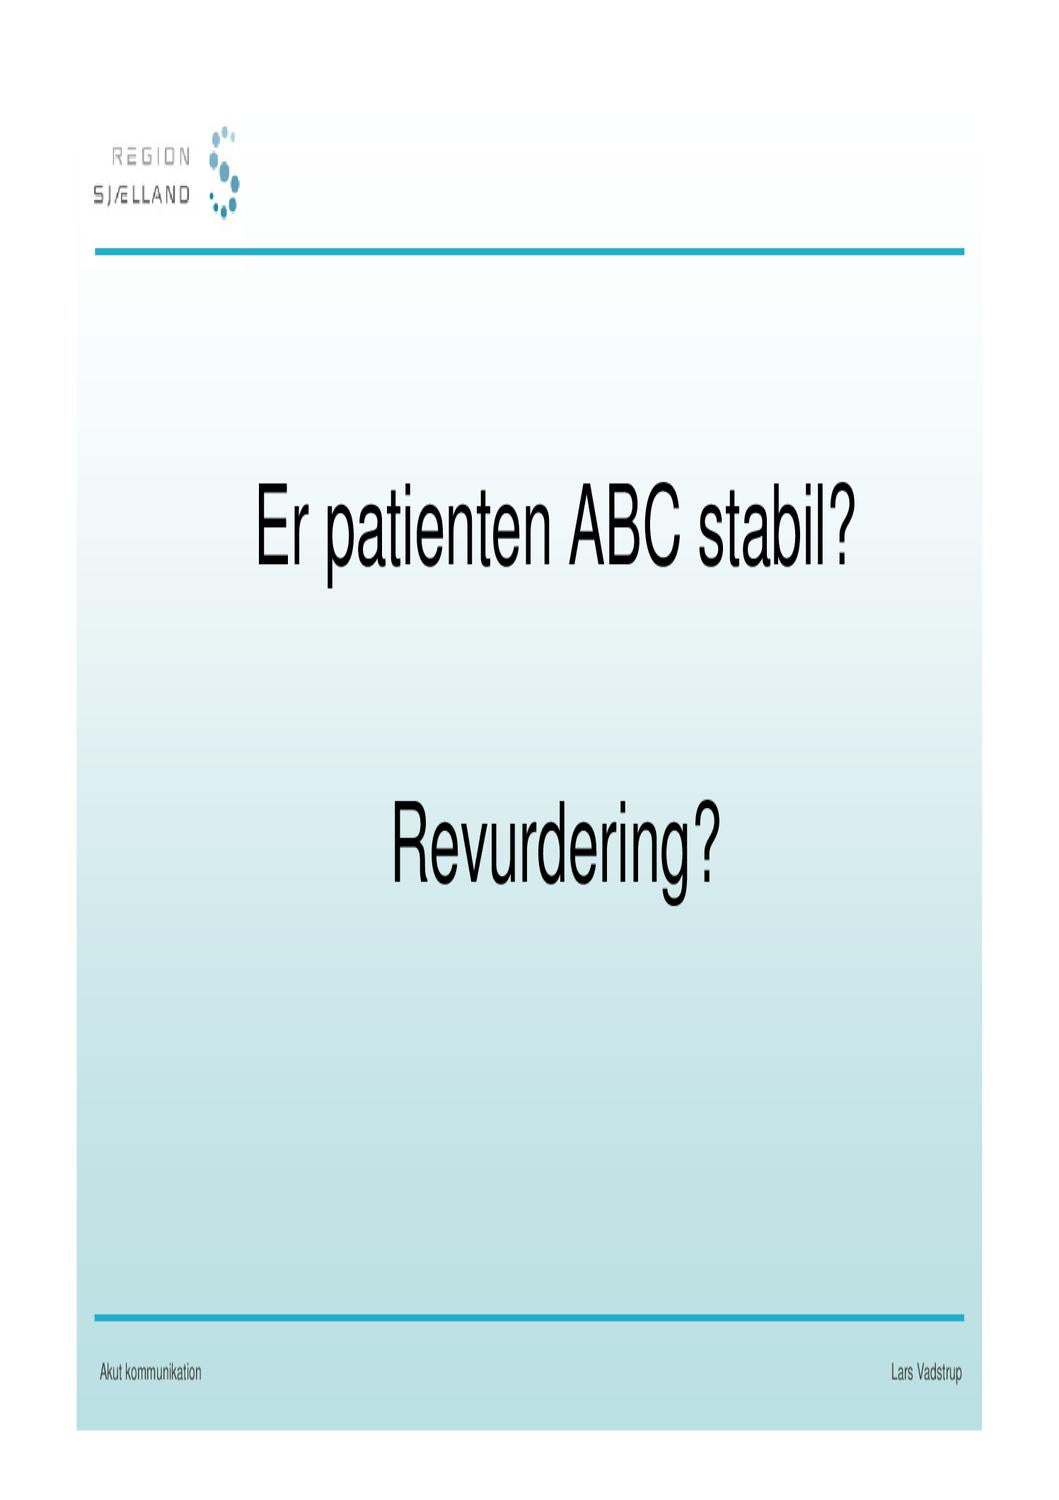 abcde princippet